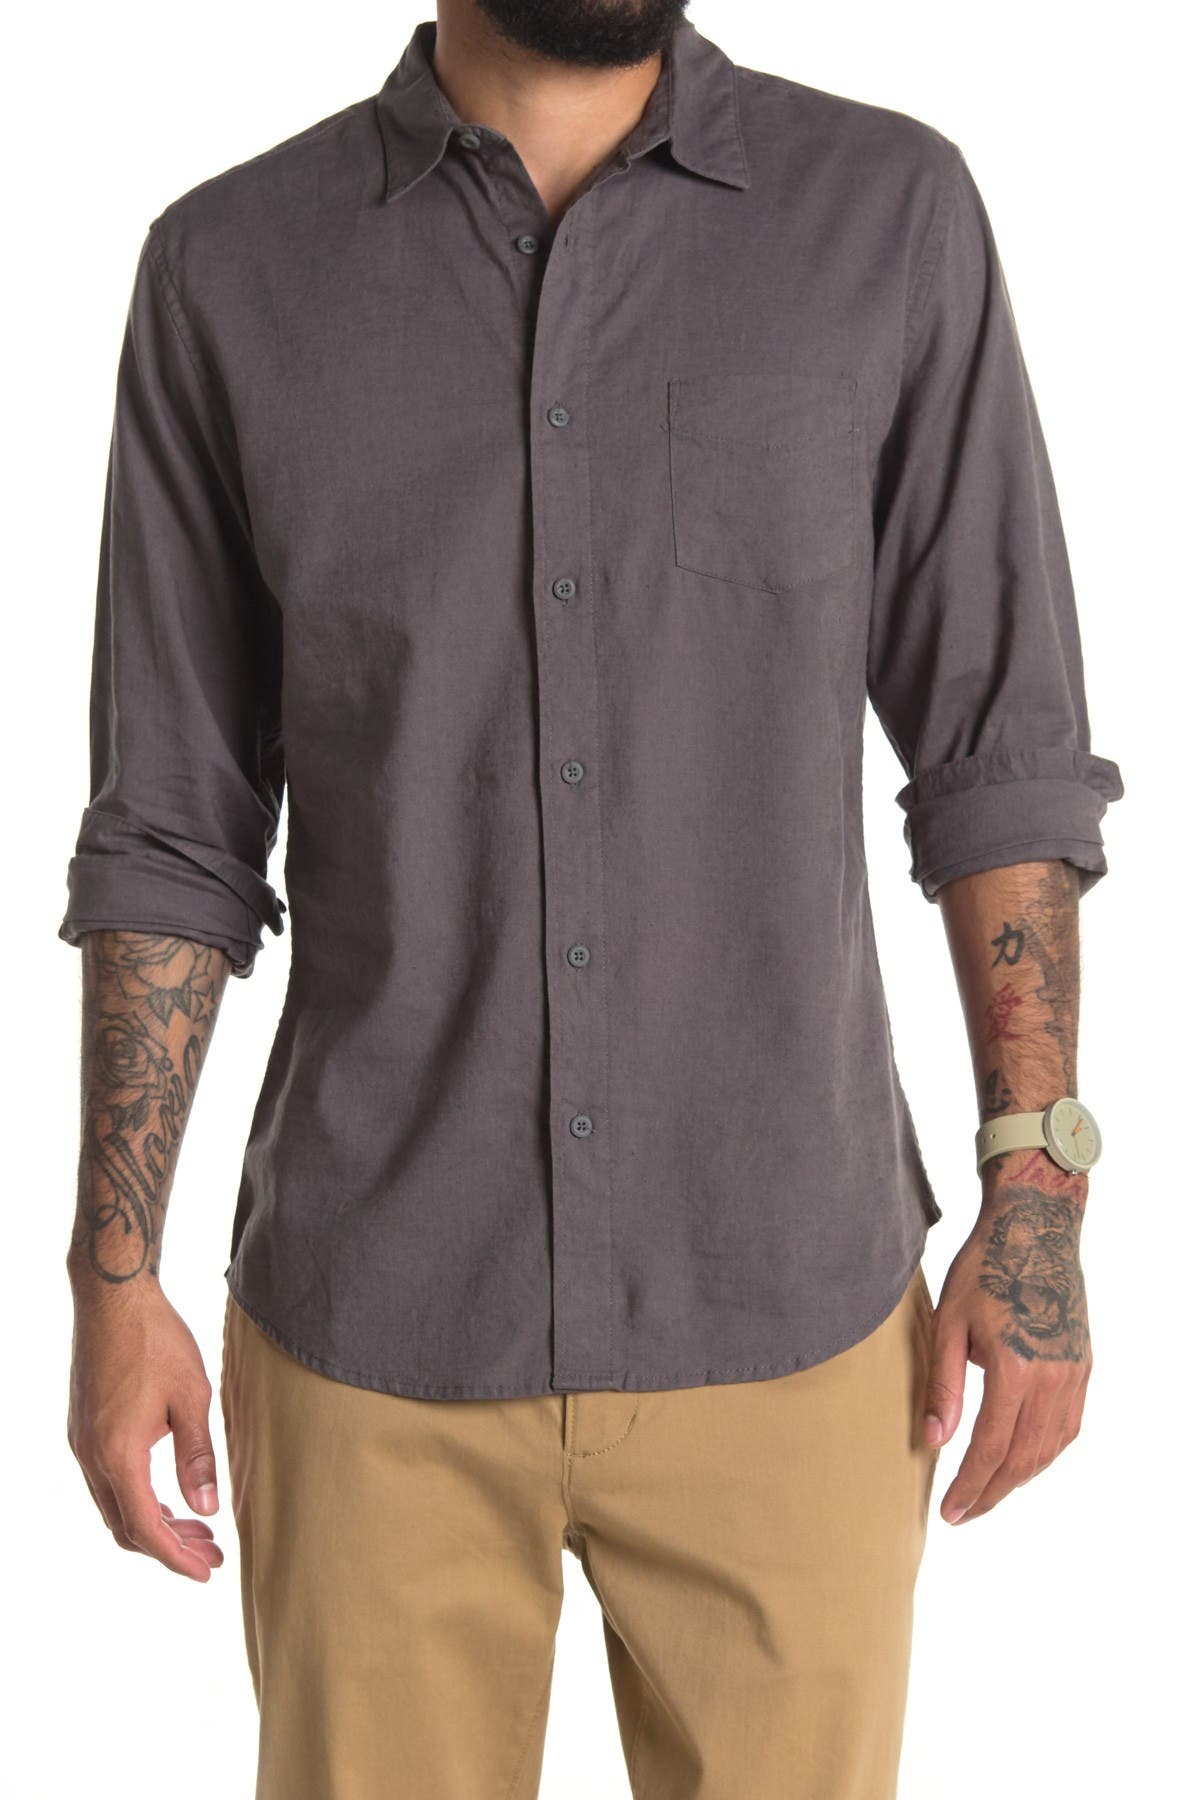 Image of Onia Abe Linen Blend Regular Fit Shirt